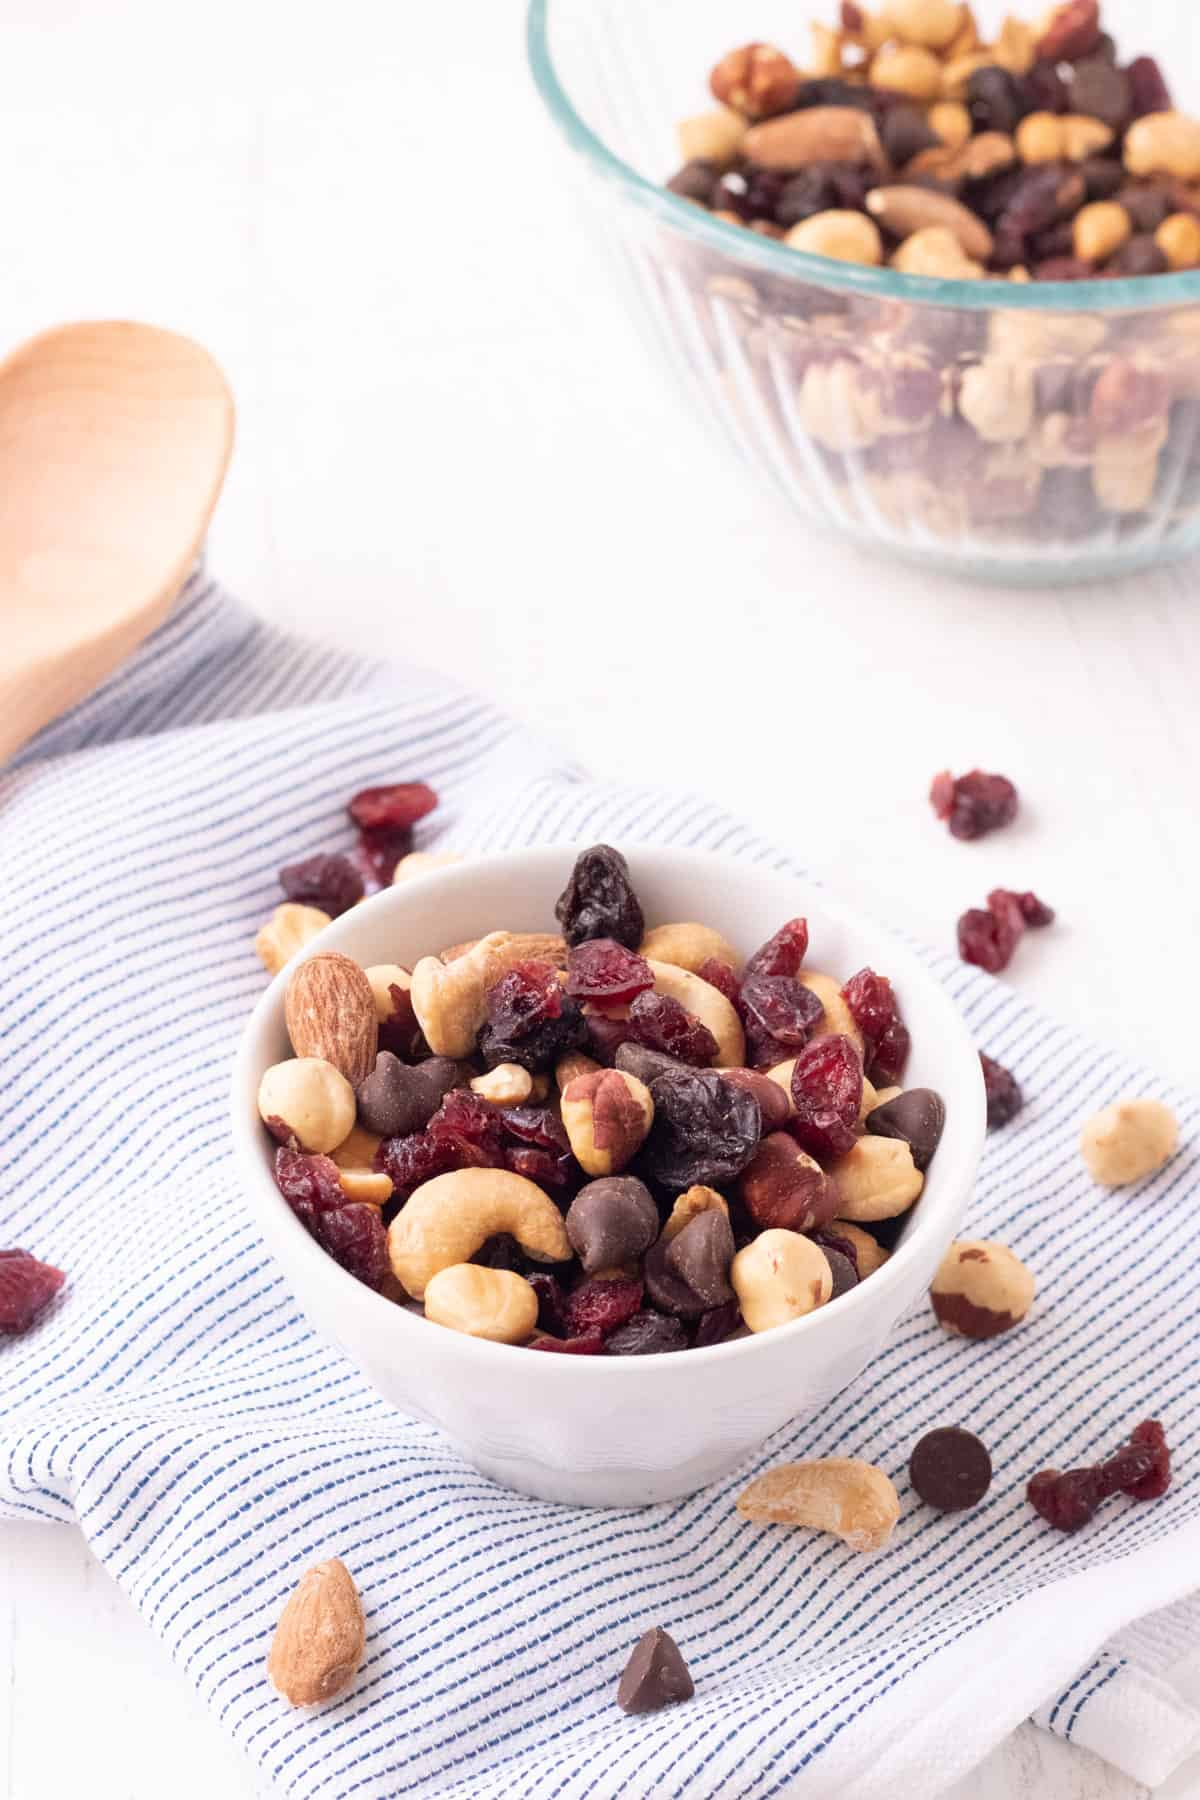 Small white bowl with roasted nuts and dried cherries and cranberries and sprinkled on a blue and white striped towel with wooden spoon and bowl of trail mix in upper background.